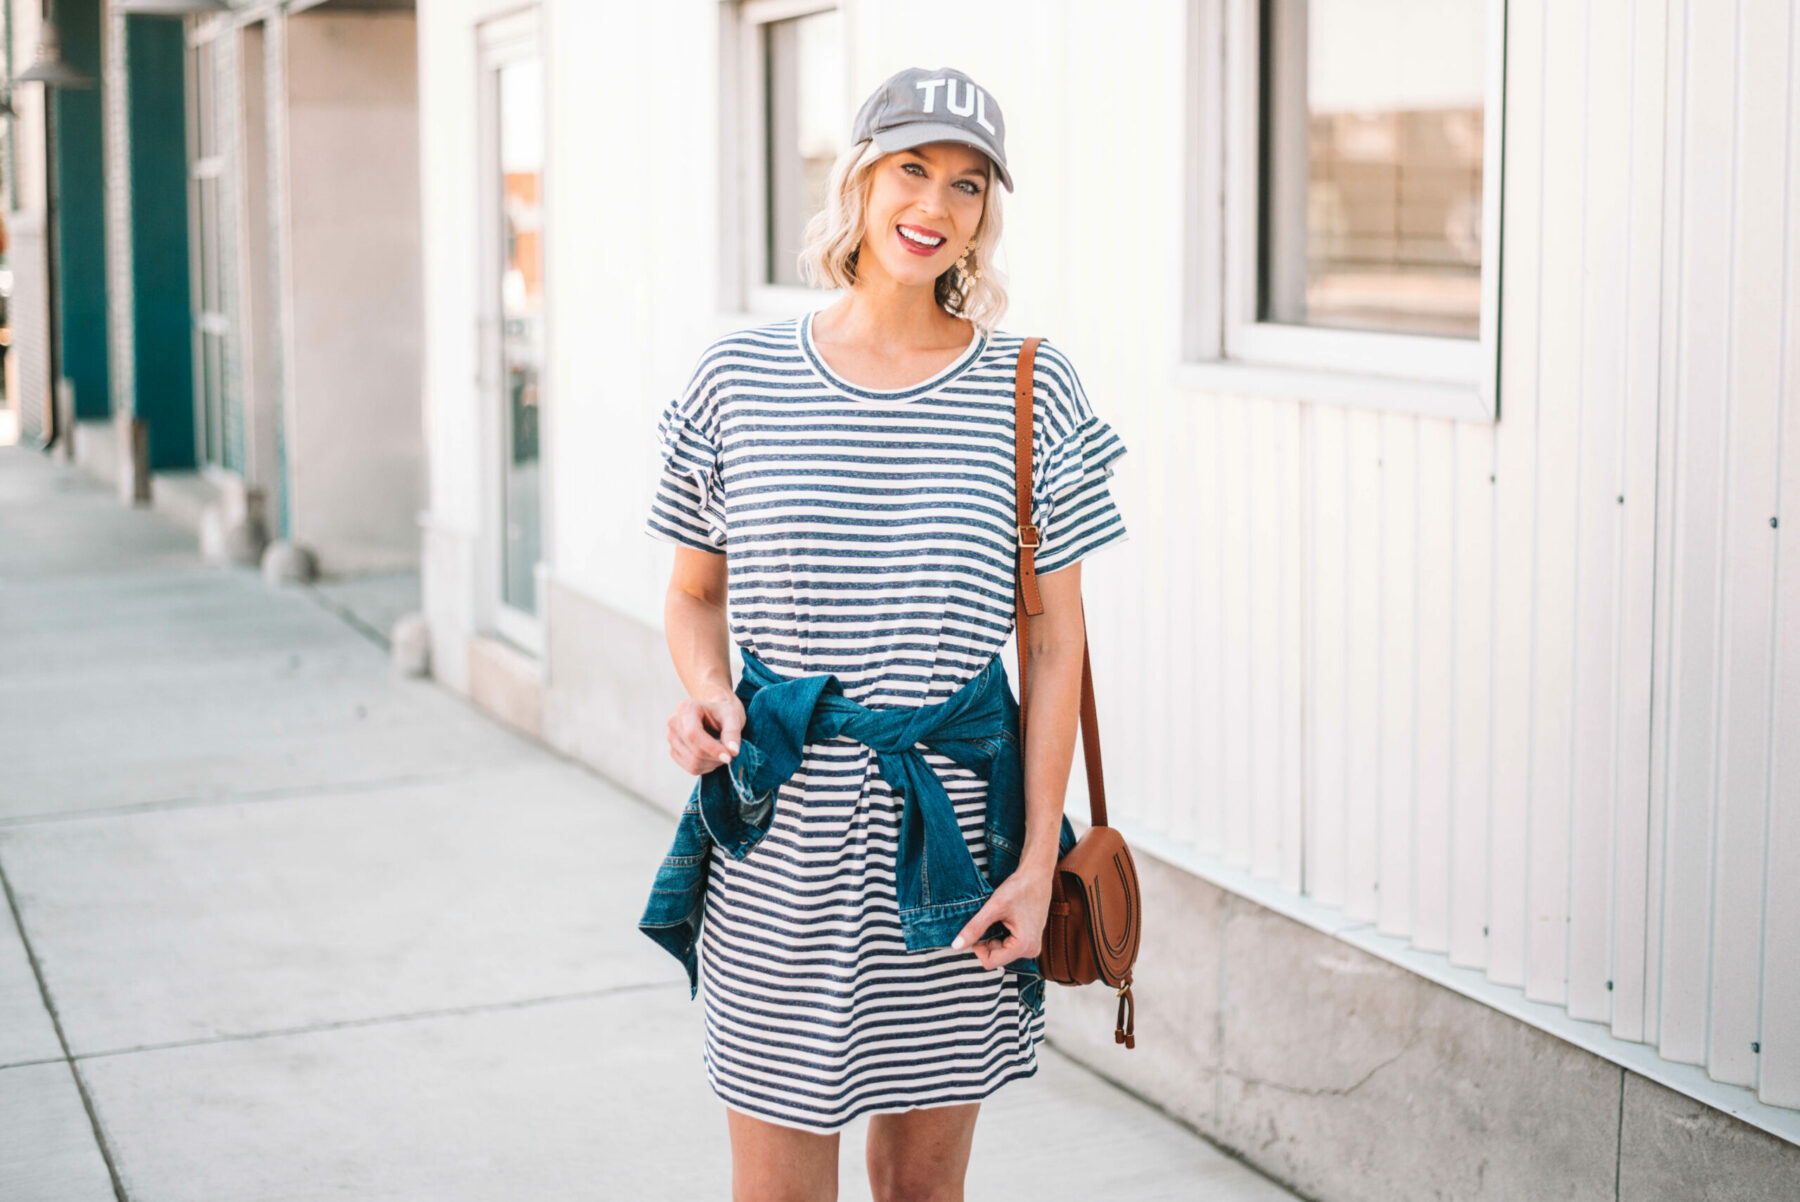 28886e9b85a291 How to Style a T-Shirt Dress Casually - Straight A Style